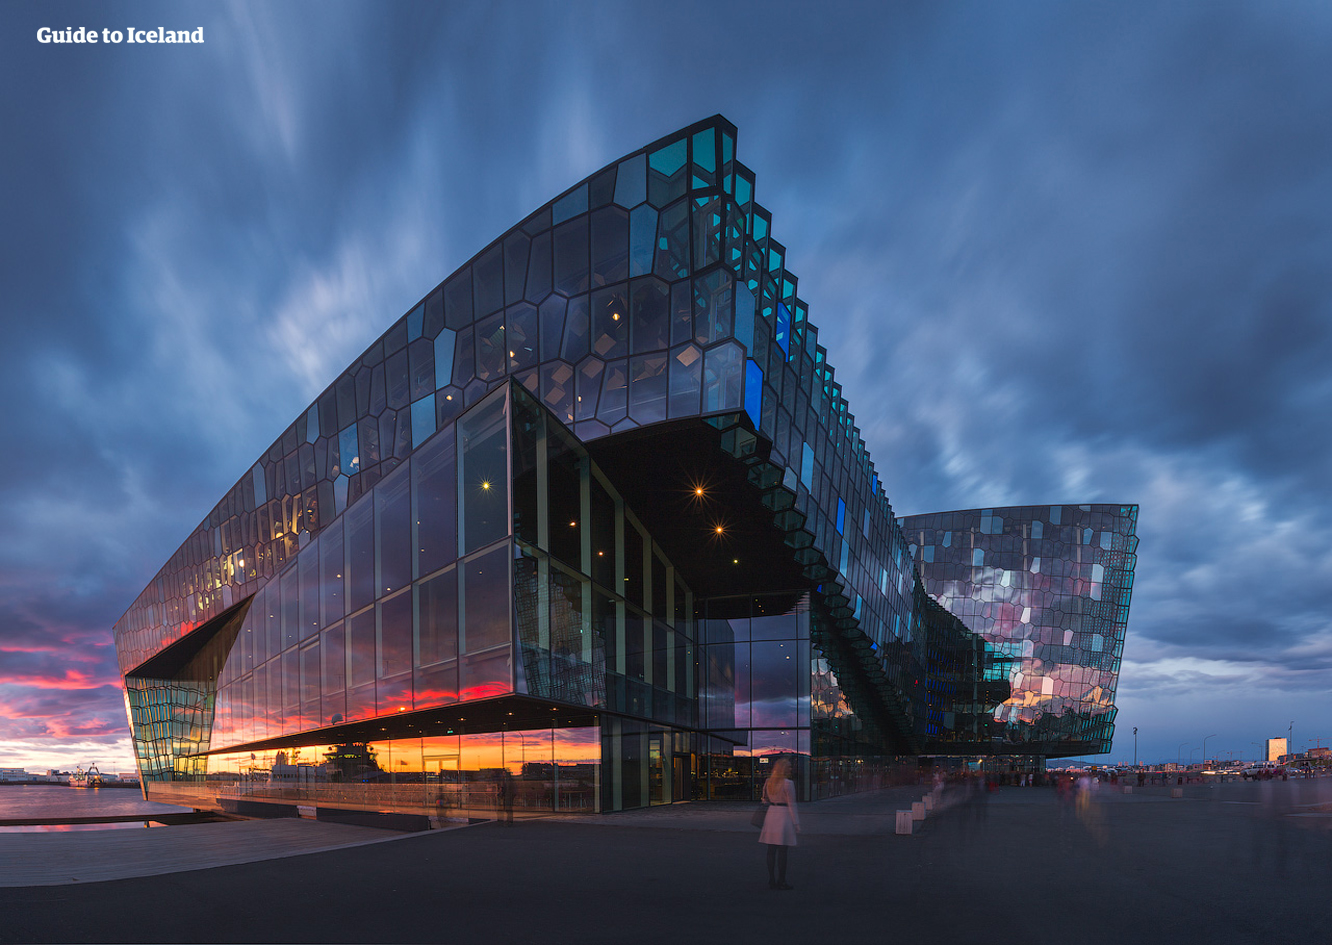 The Harpa Concert Hall on the shore of Reykjavik.